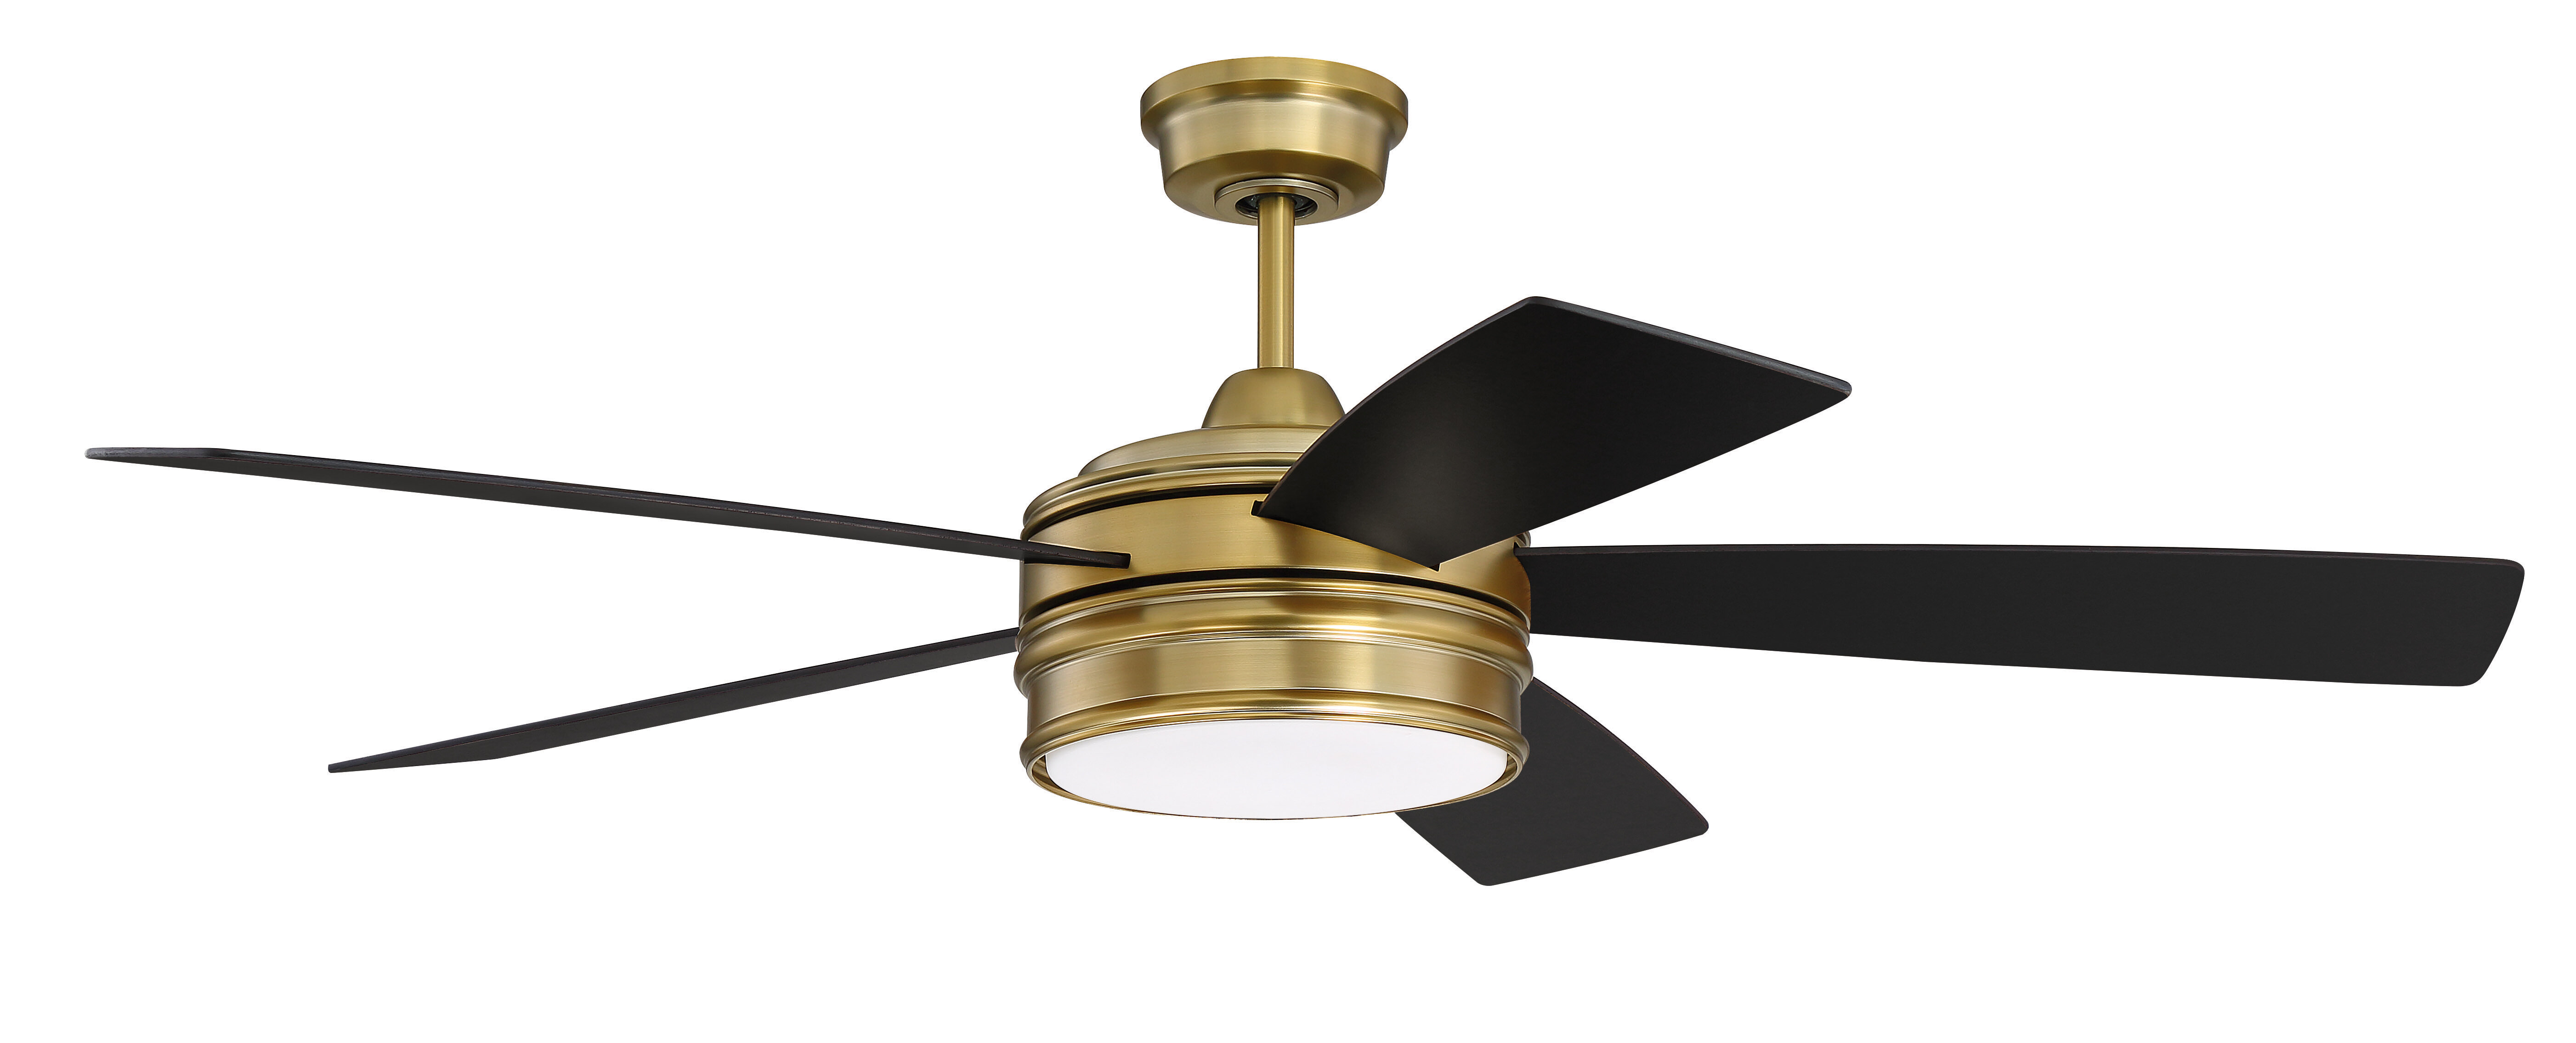 Three Posts 52 Alistair 5 Blade Led Standard Ceiling Fan With Remote Control And Light Kit Included Reviews Wayfair